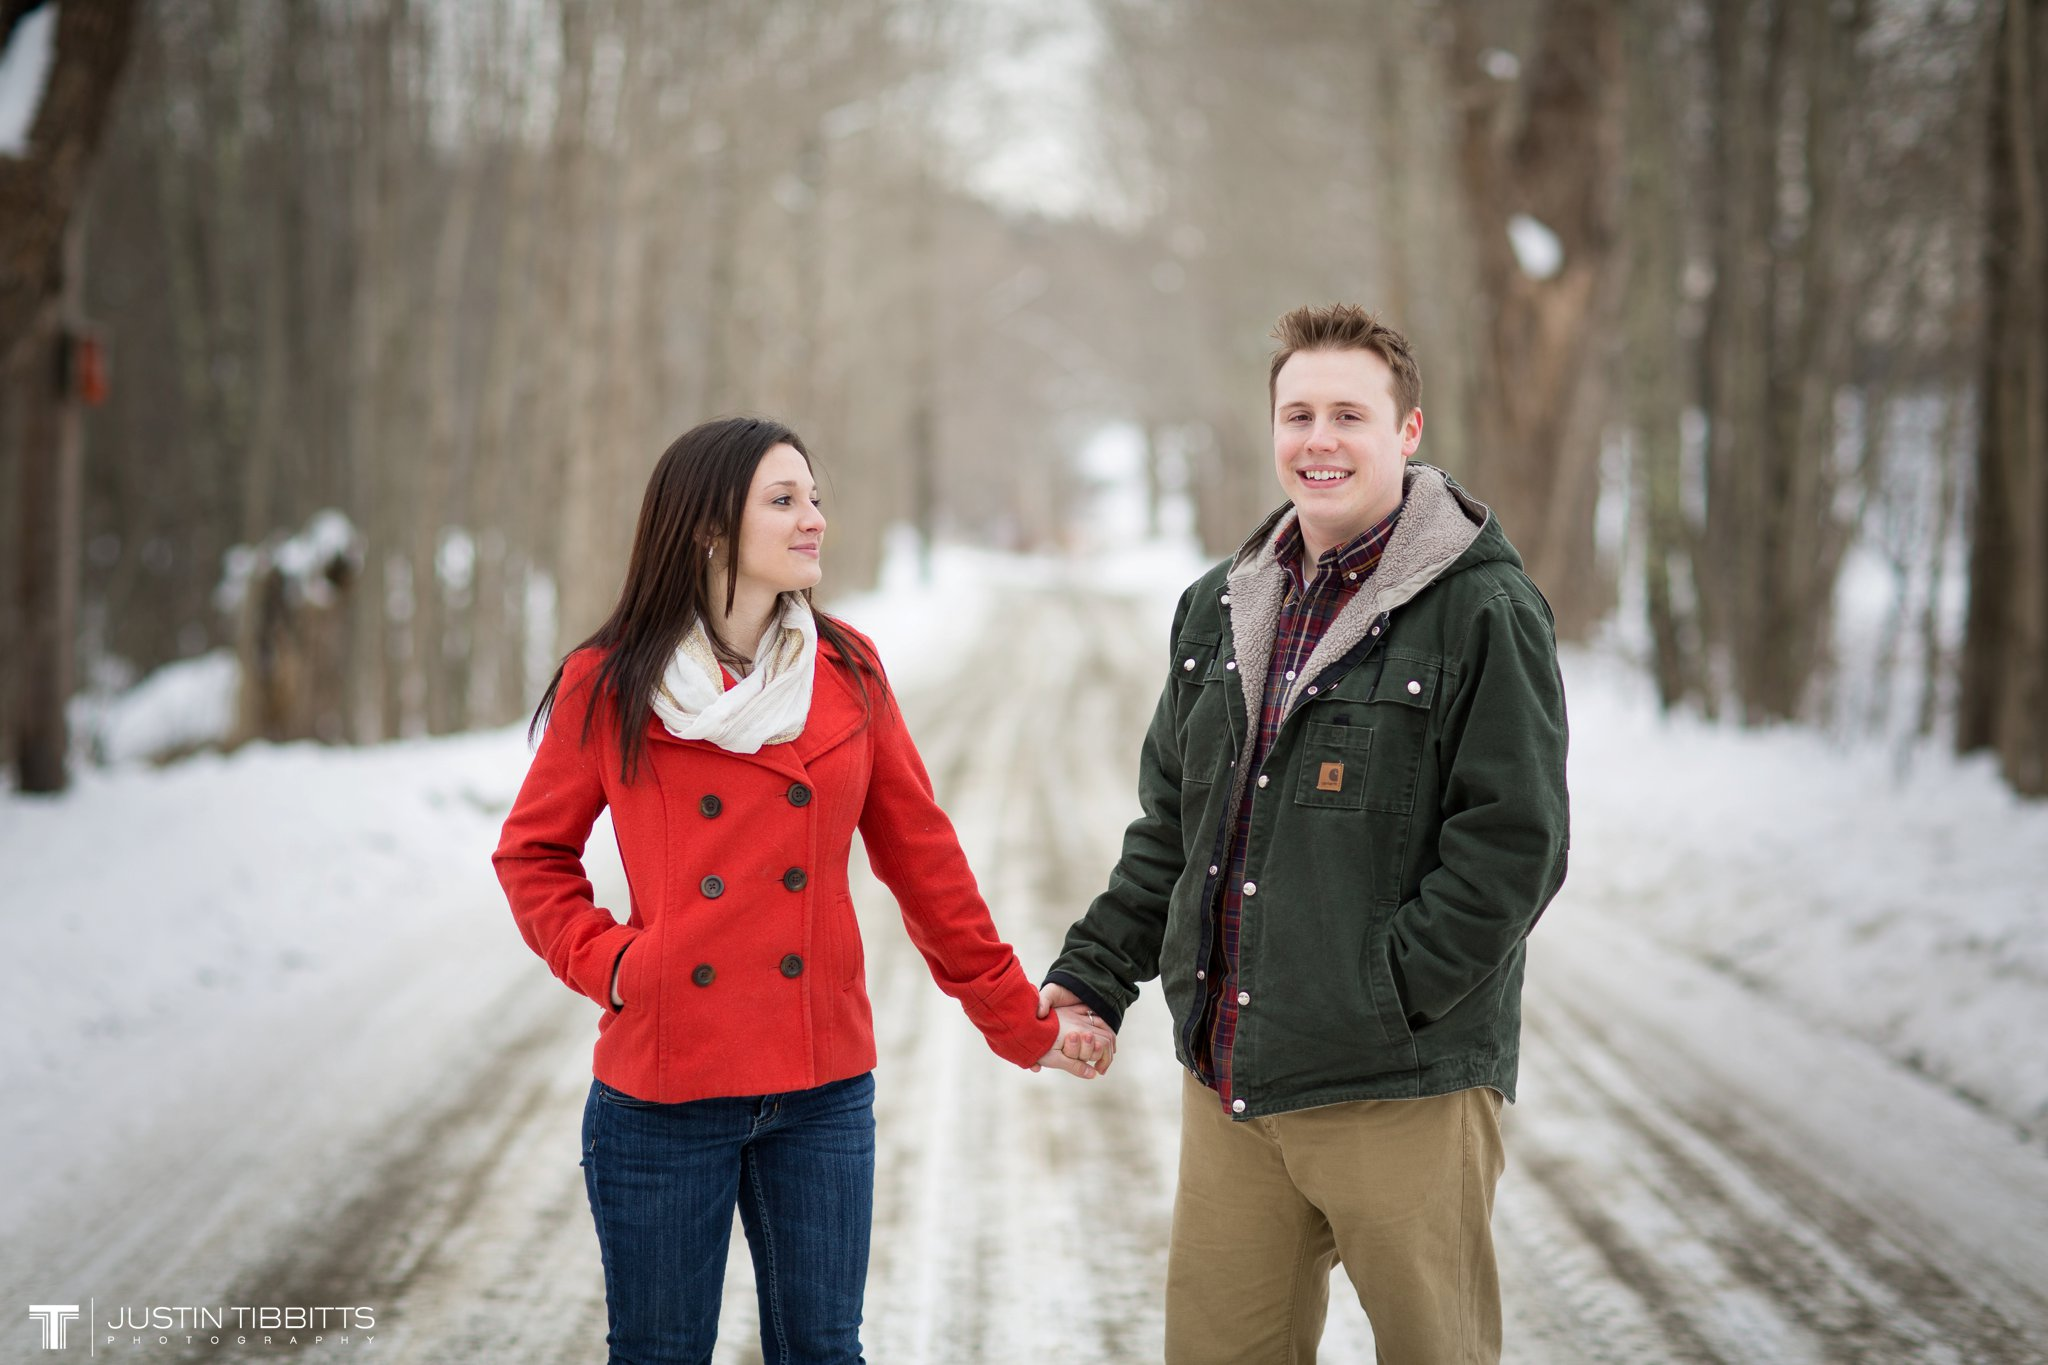 Justin Tibbitts Photography Brittany and Rob's Averill Park New York Engagement Photo shoot_0021